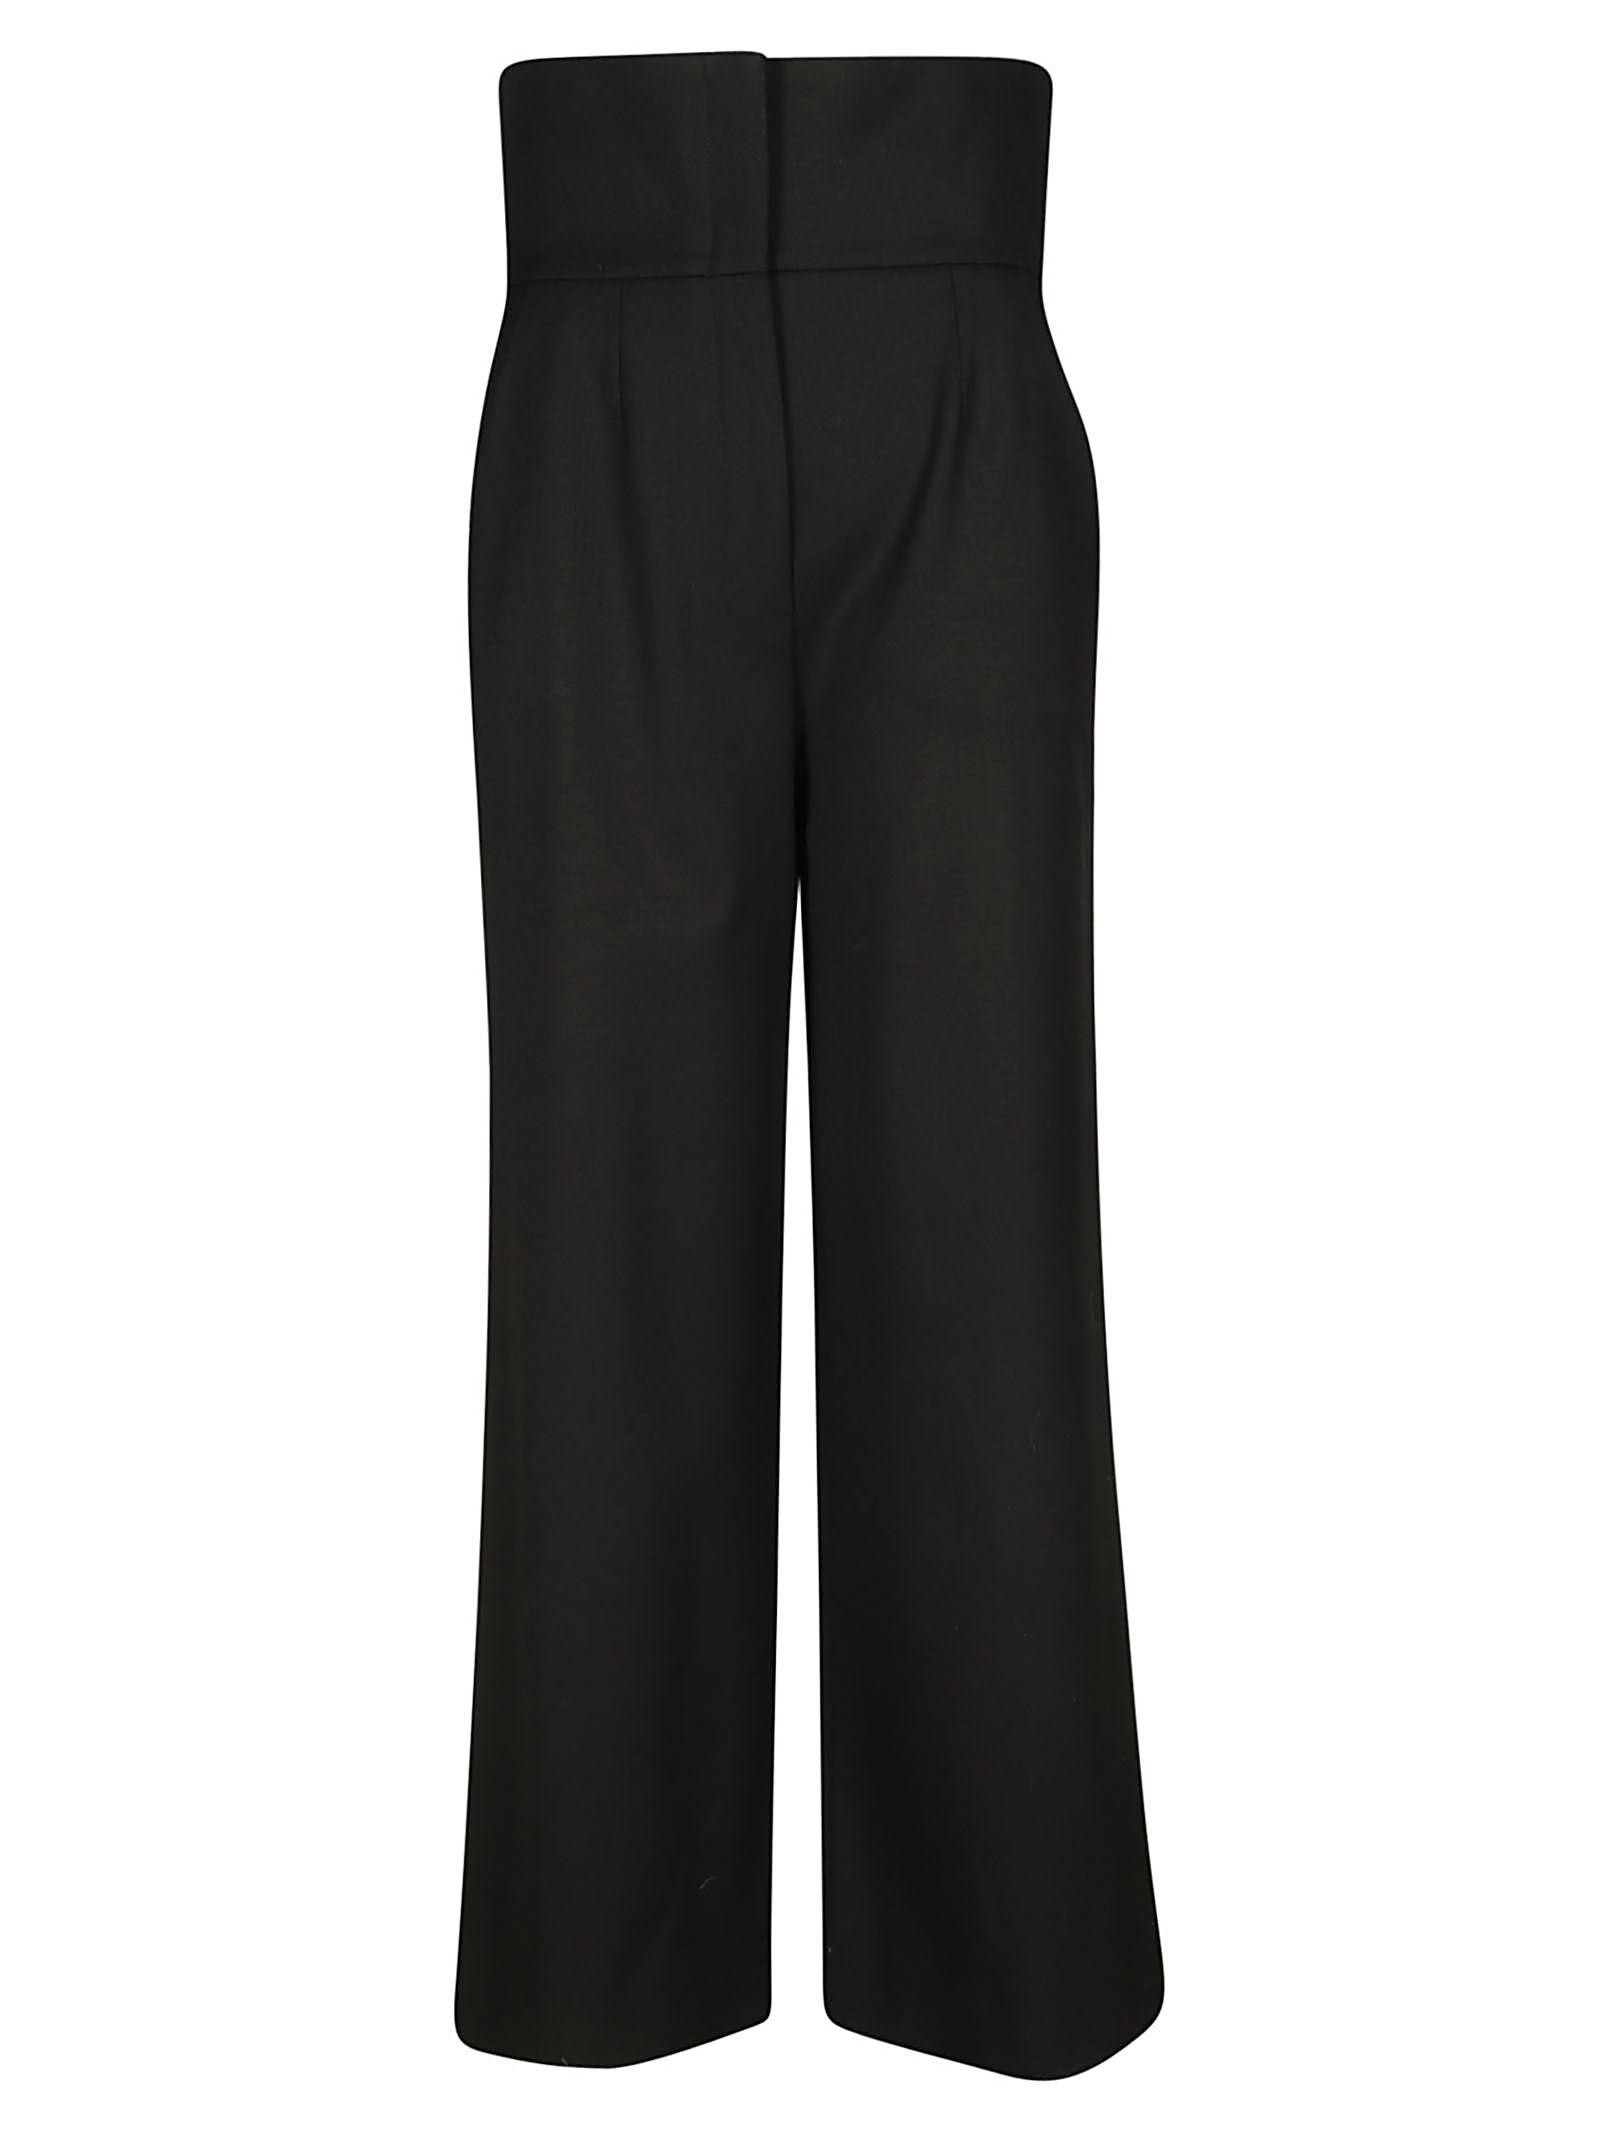 Dolce & Gabbana Tailored High-waisted Trousers